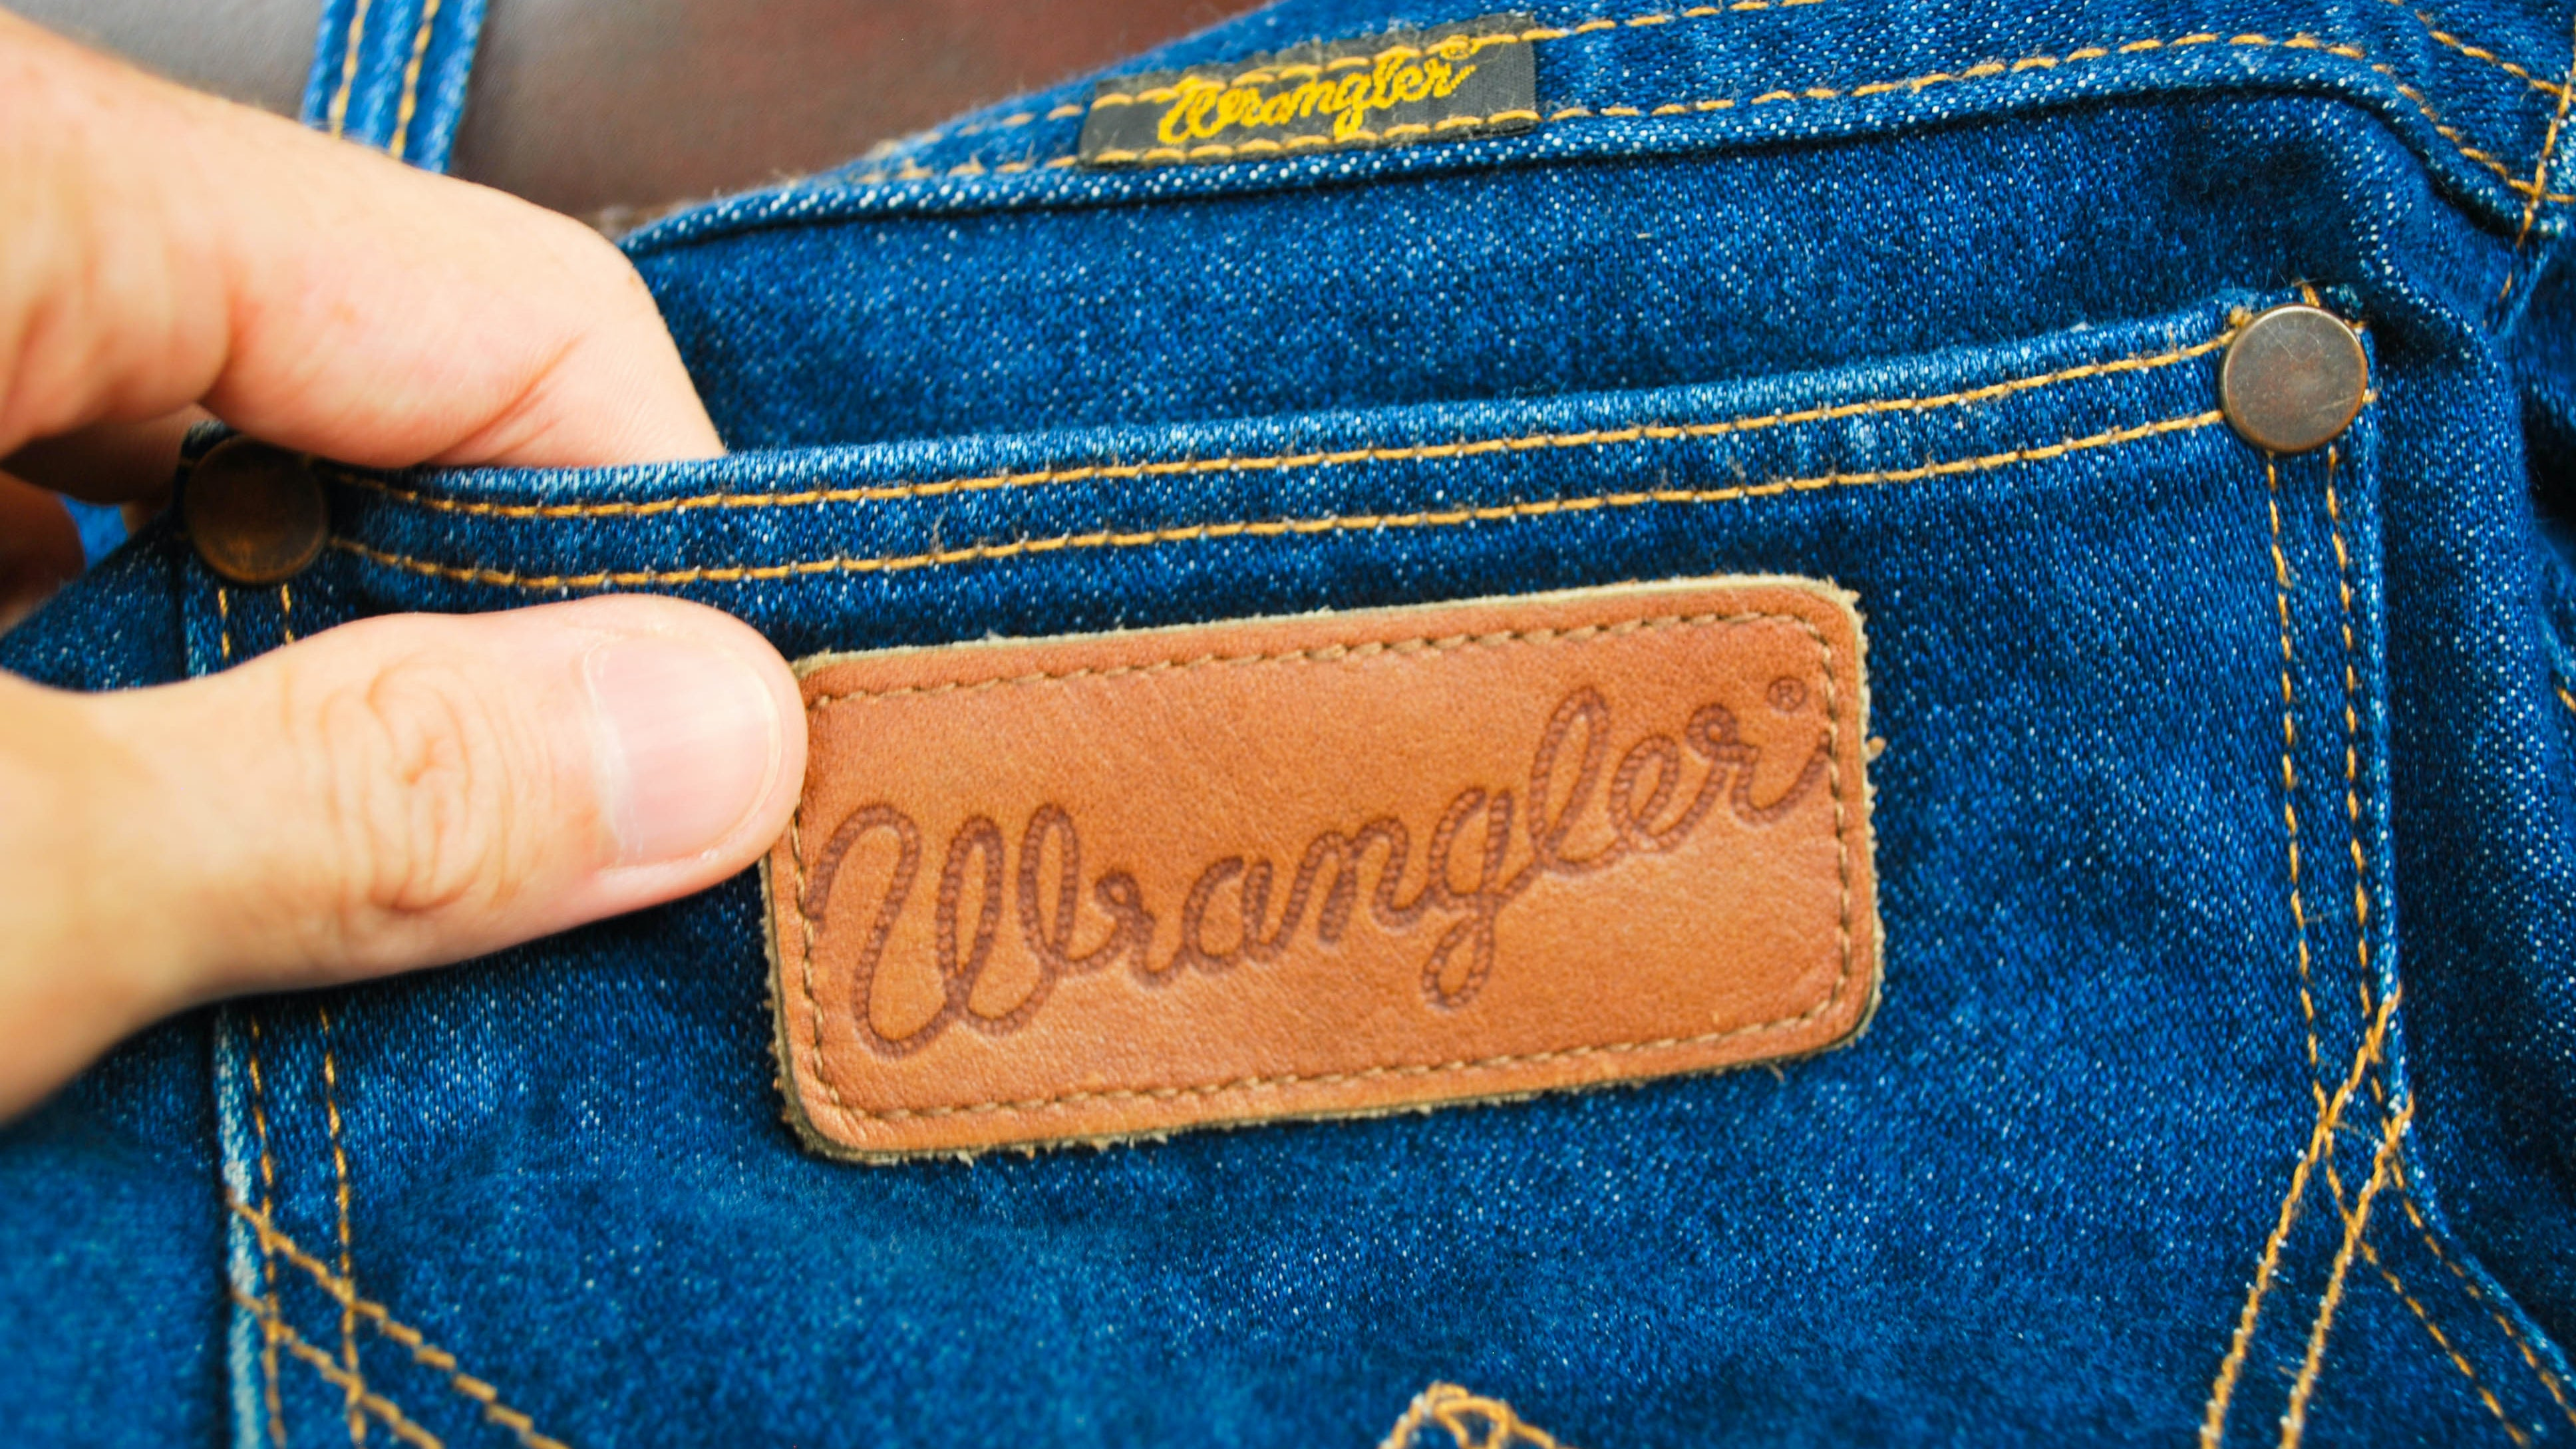 Wrangler Jeans Are Headed to China